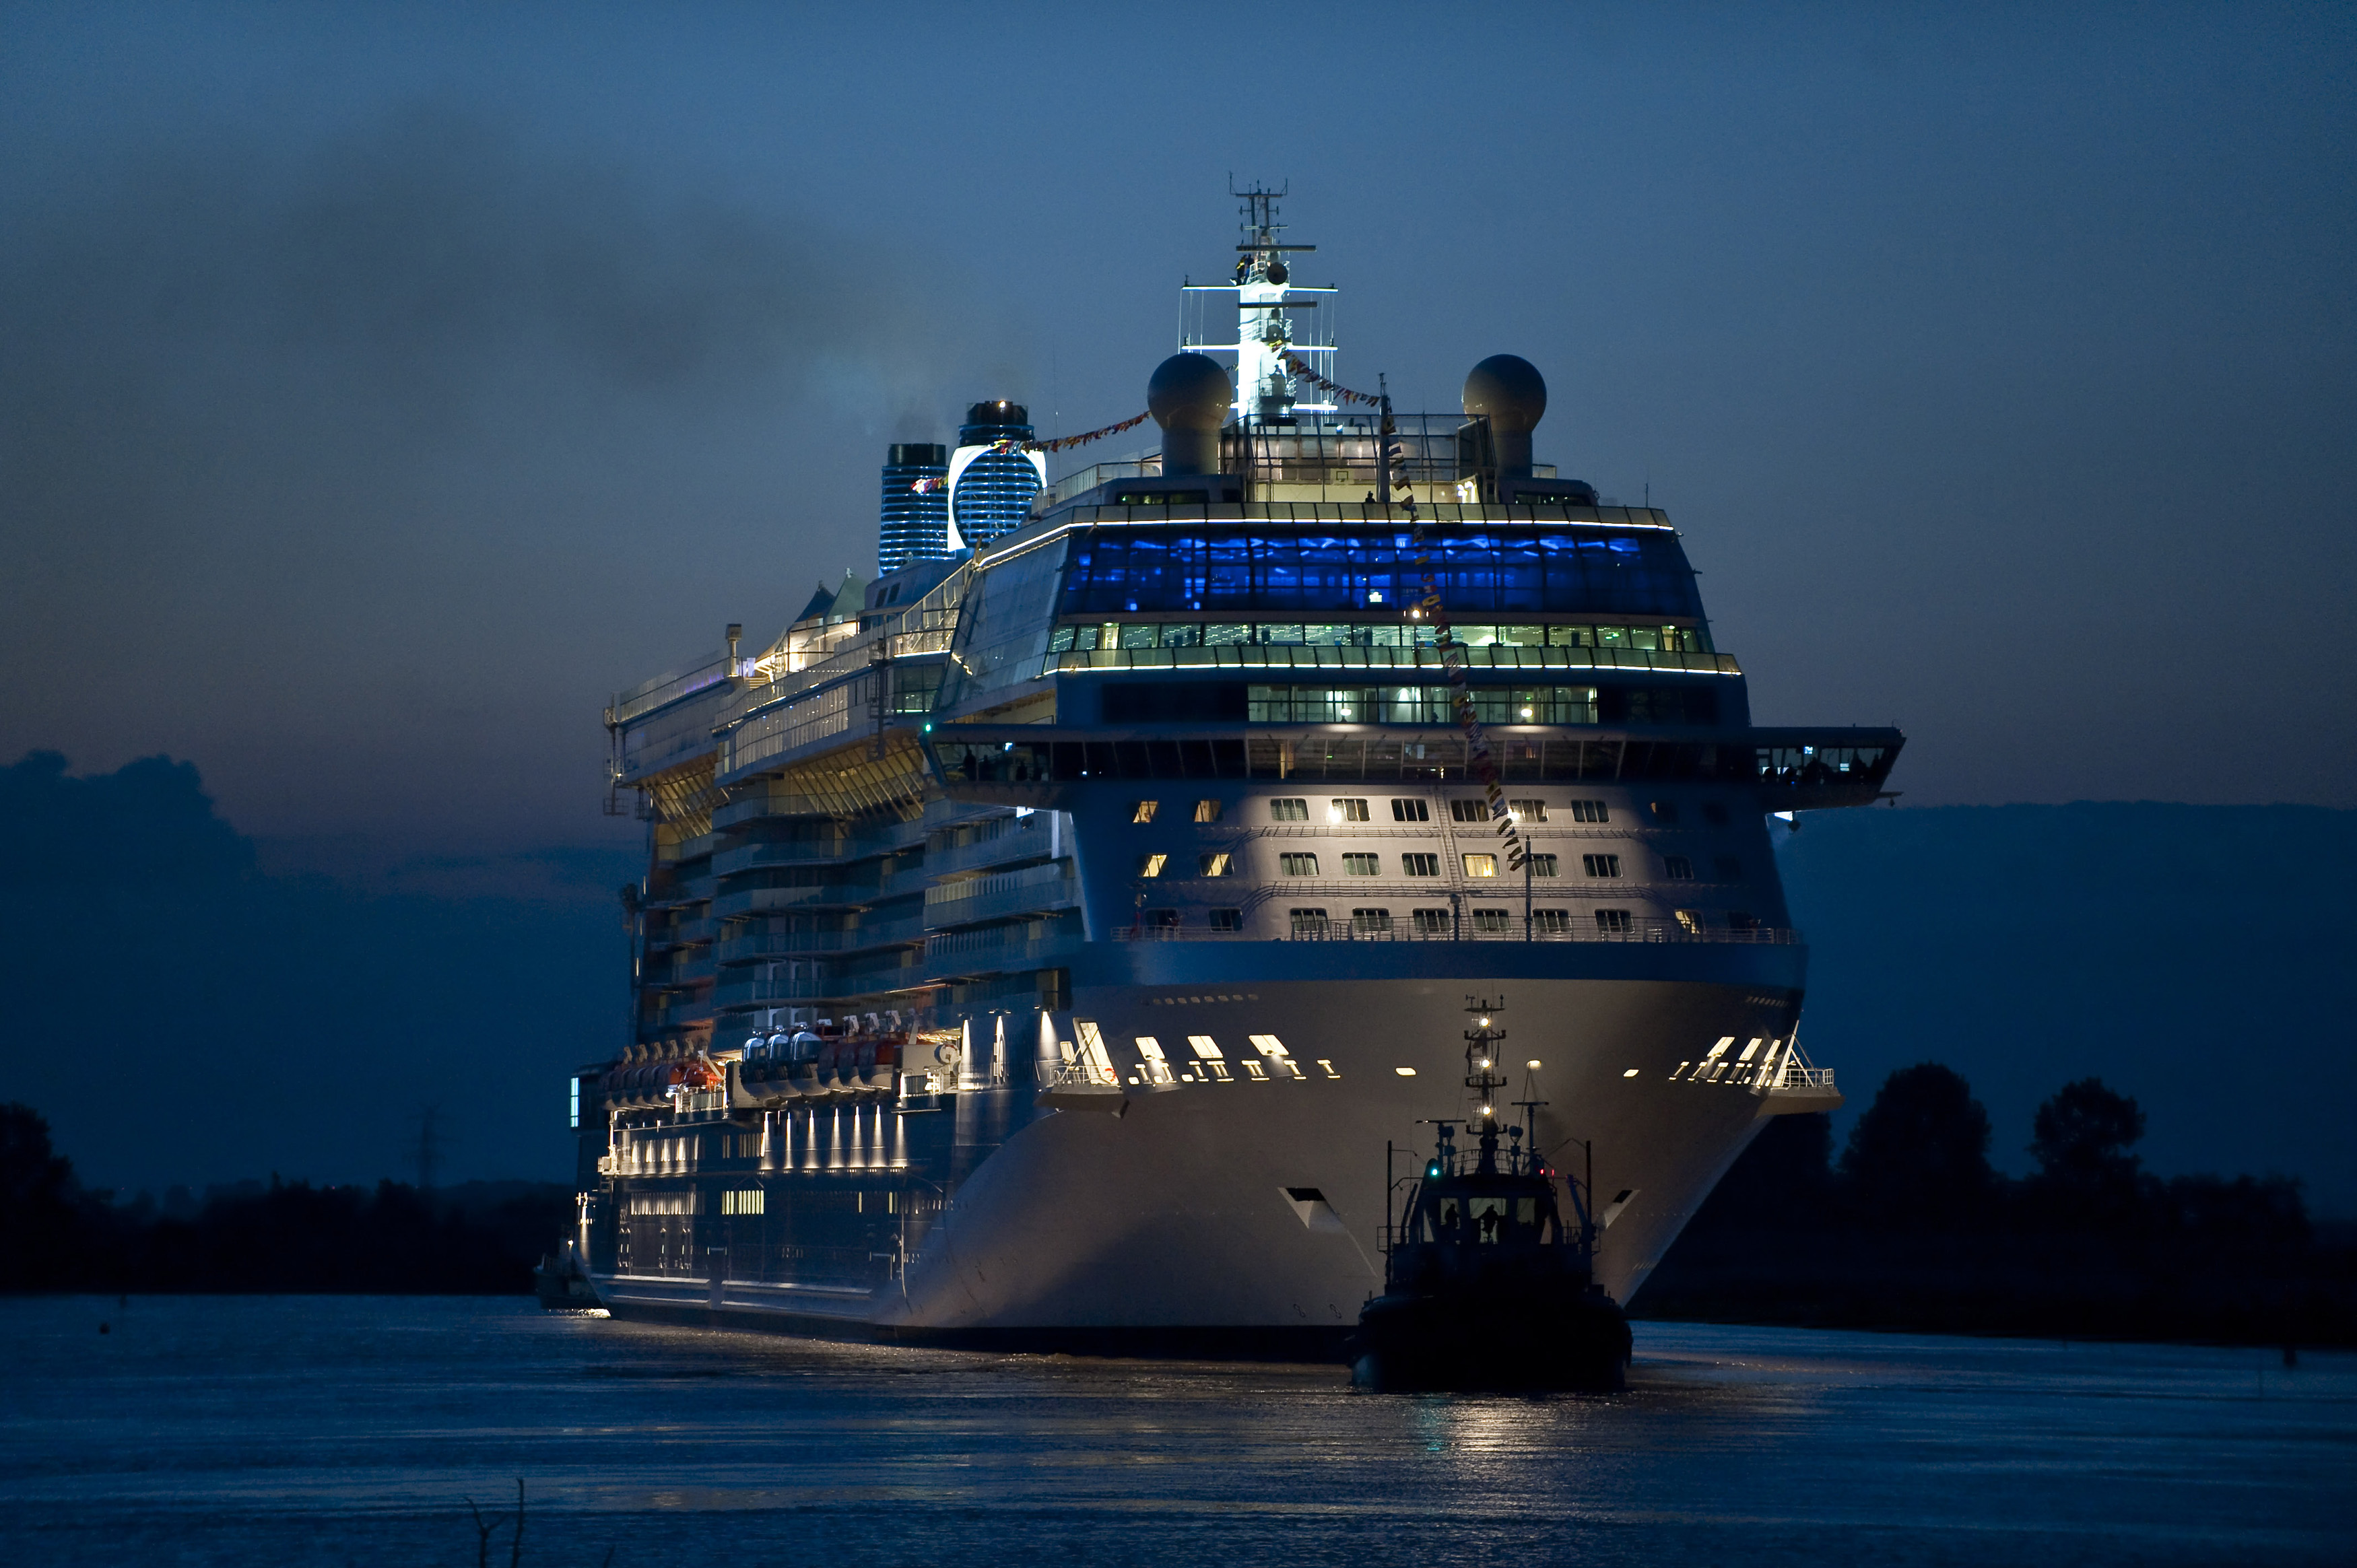 14-Night Celebrity Infinity Ft. Lauderdale to Barcelona ...